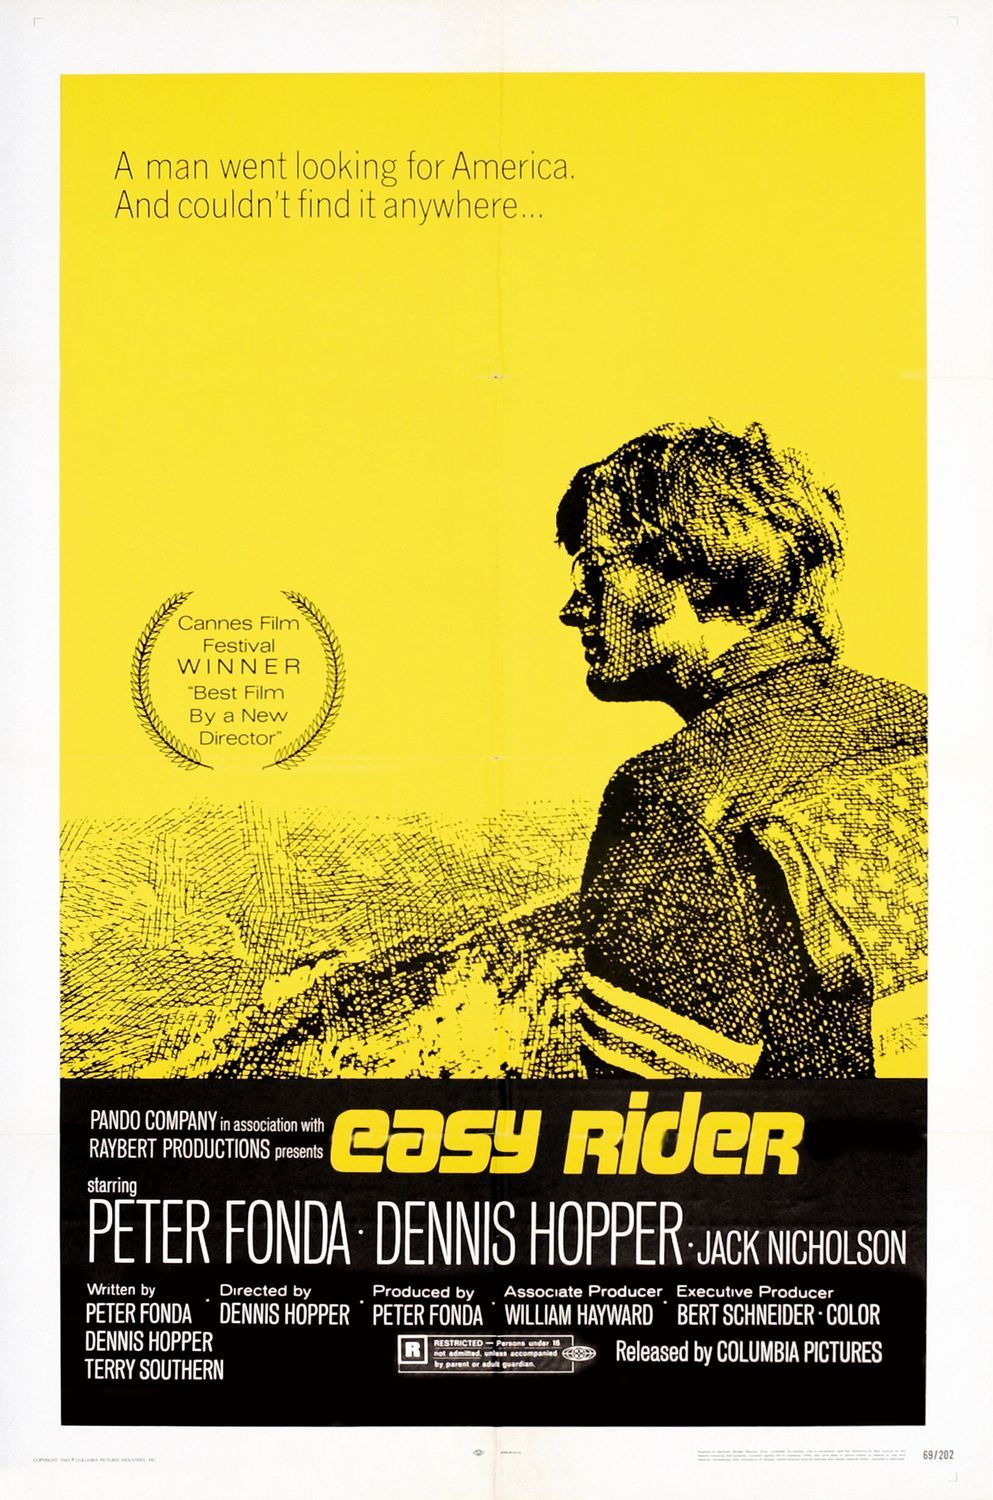 Easy Rider (1969) - Directed by: Dennis HopperStarring: Peter Fonda, Dennis Hopper, Jack NicholsonRated: RRunning Time: 1h 35mTMM Score: 4 stars out of 5STRENGTHS: Authenticity, IntamacyWEAKNESSES: Slow Pacing